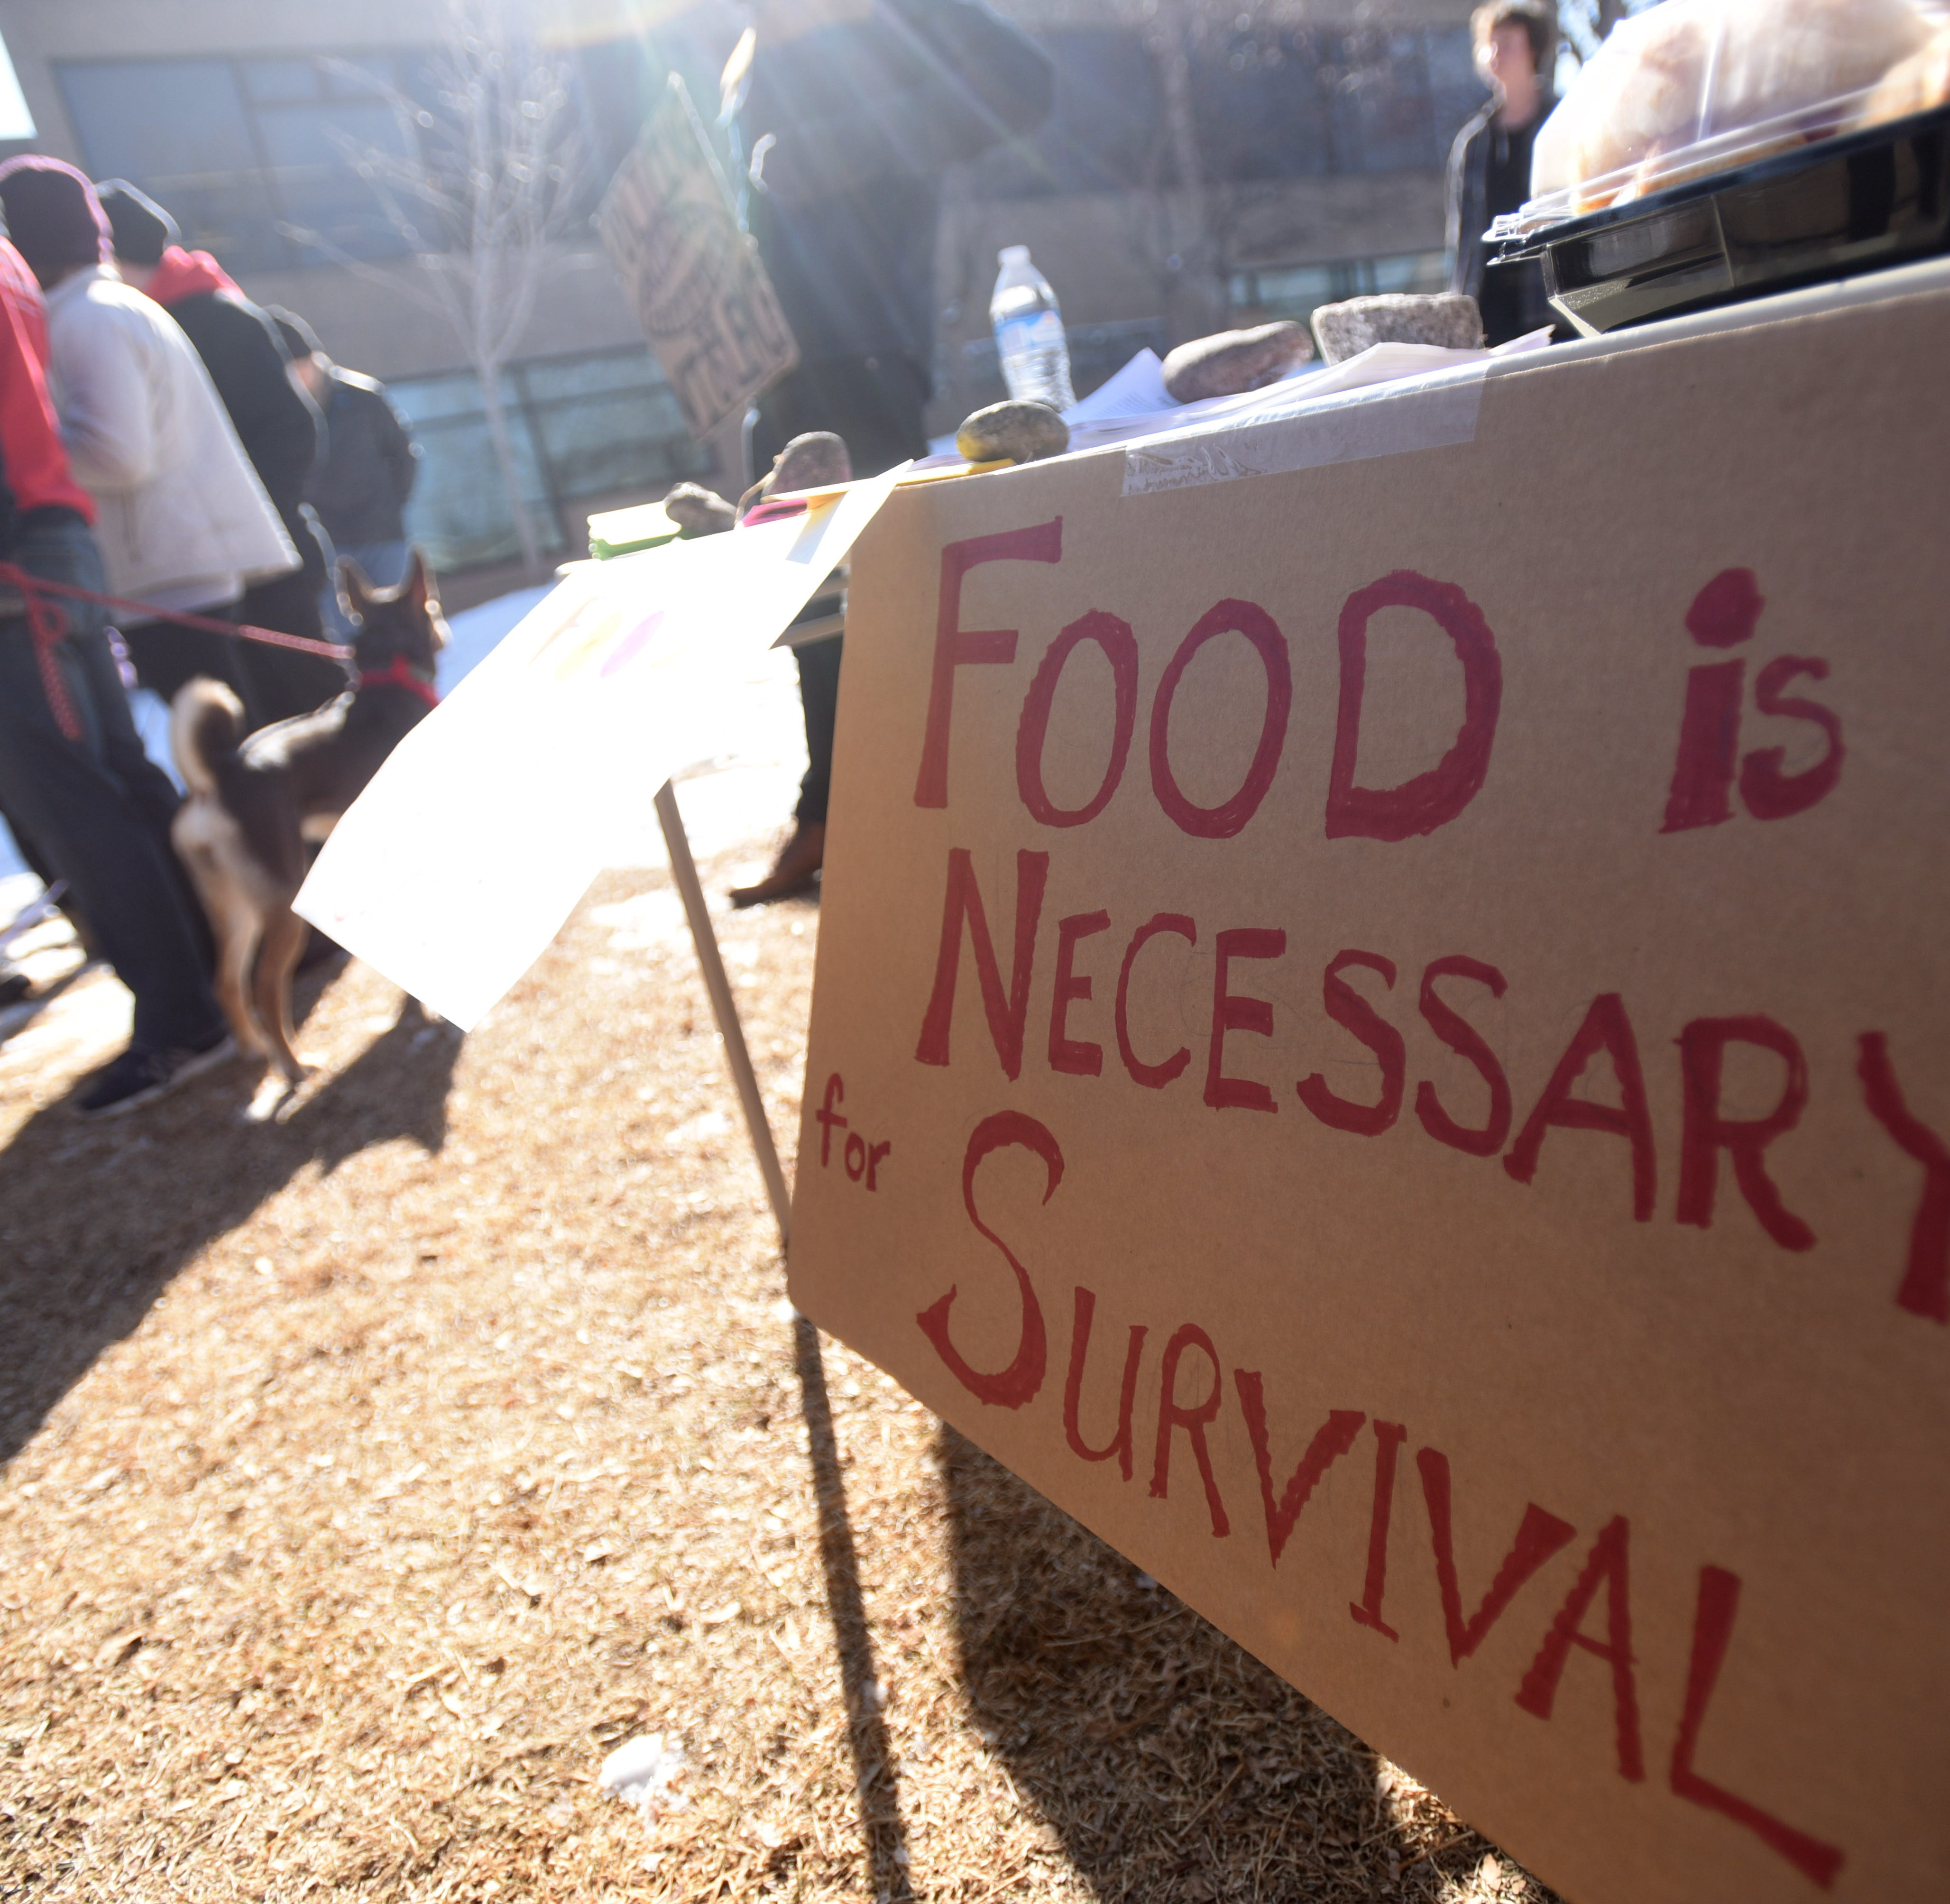 Weekly picnic for homeless is shut down in Library Park, leading to rally and uncertain future